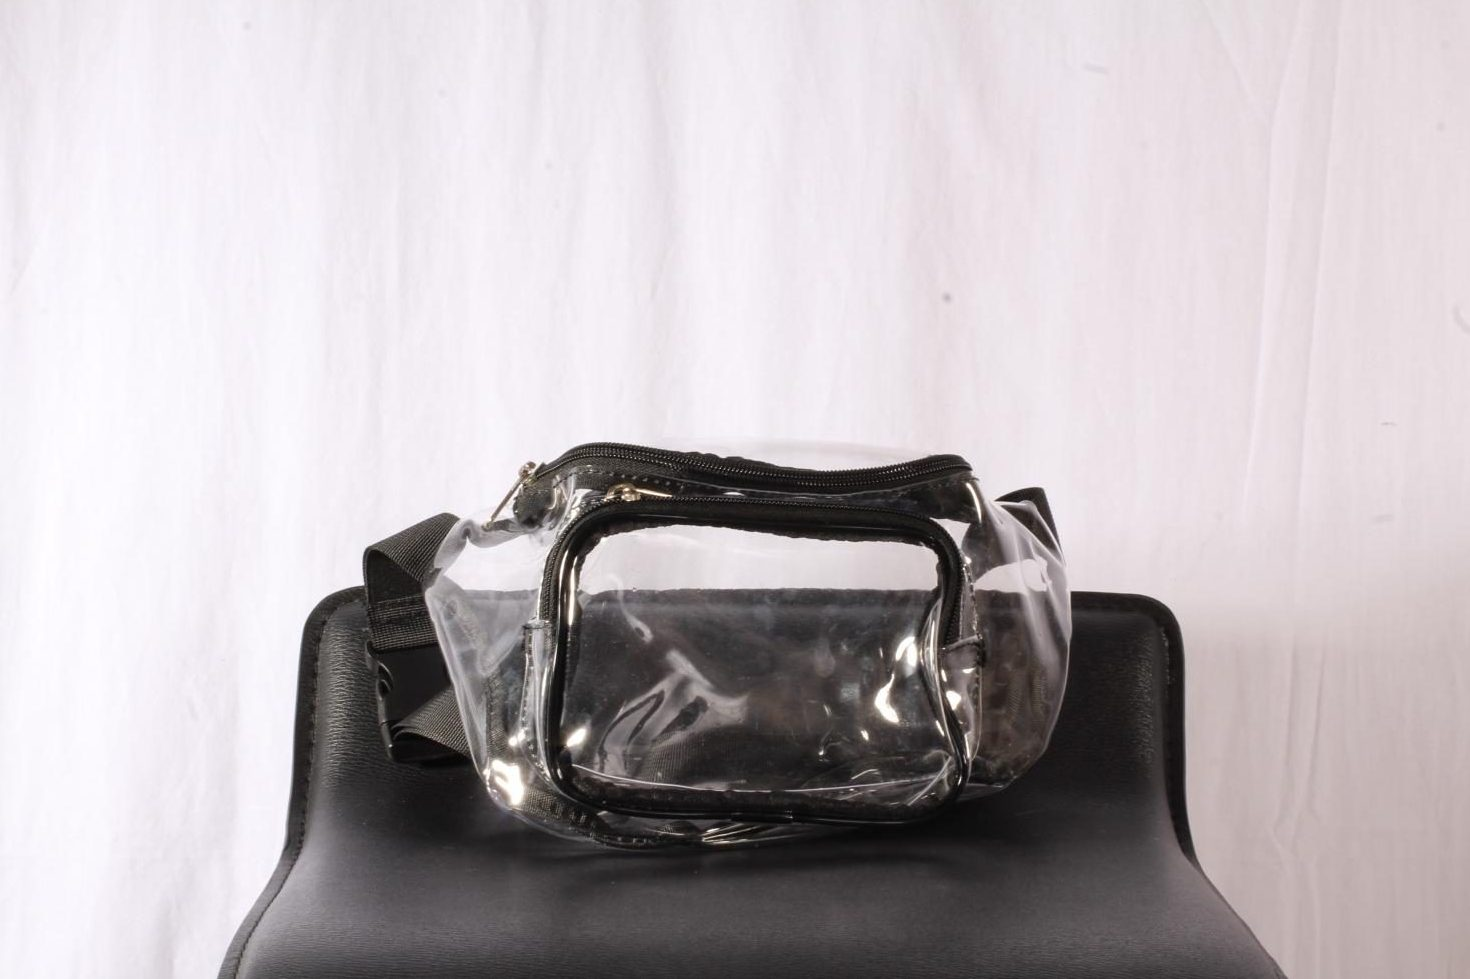 Enterprise Center implemented a new clear bag policy. Bags over a certain size must be clear, such as the fanny pack pictured above.